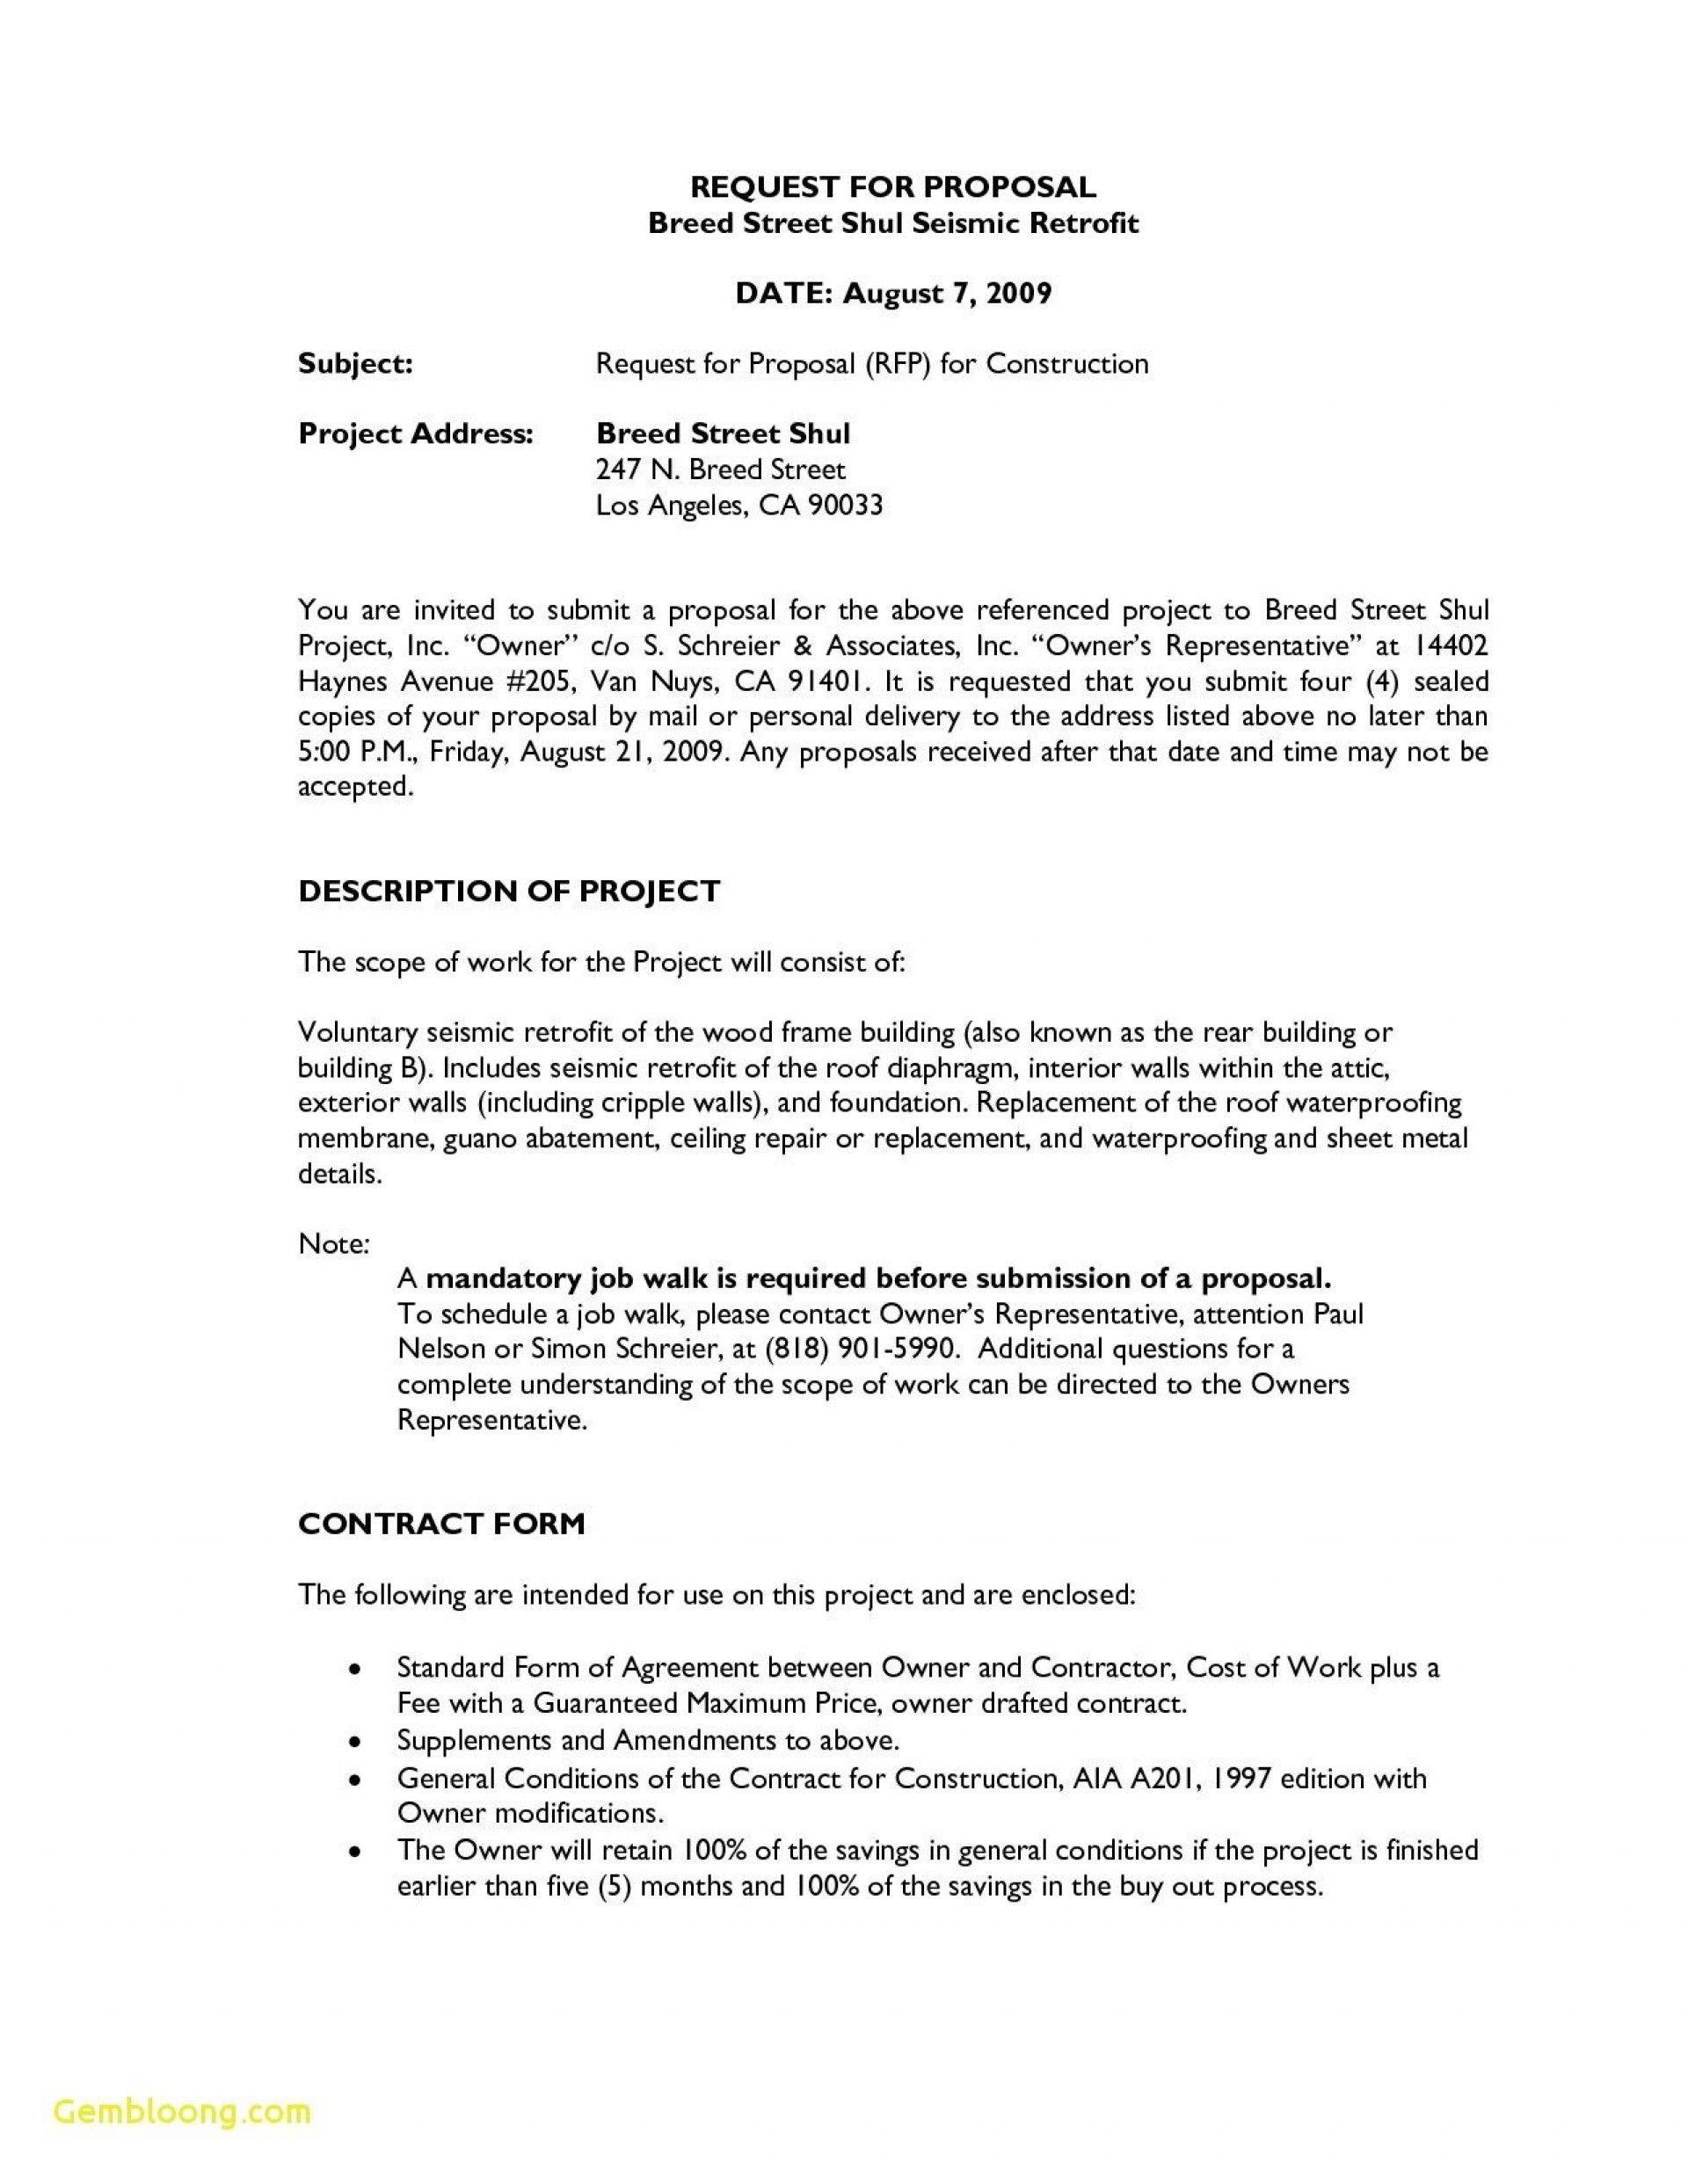 007 Rare Request For Proposal Response Word Template Concept Full